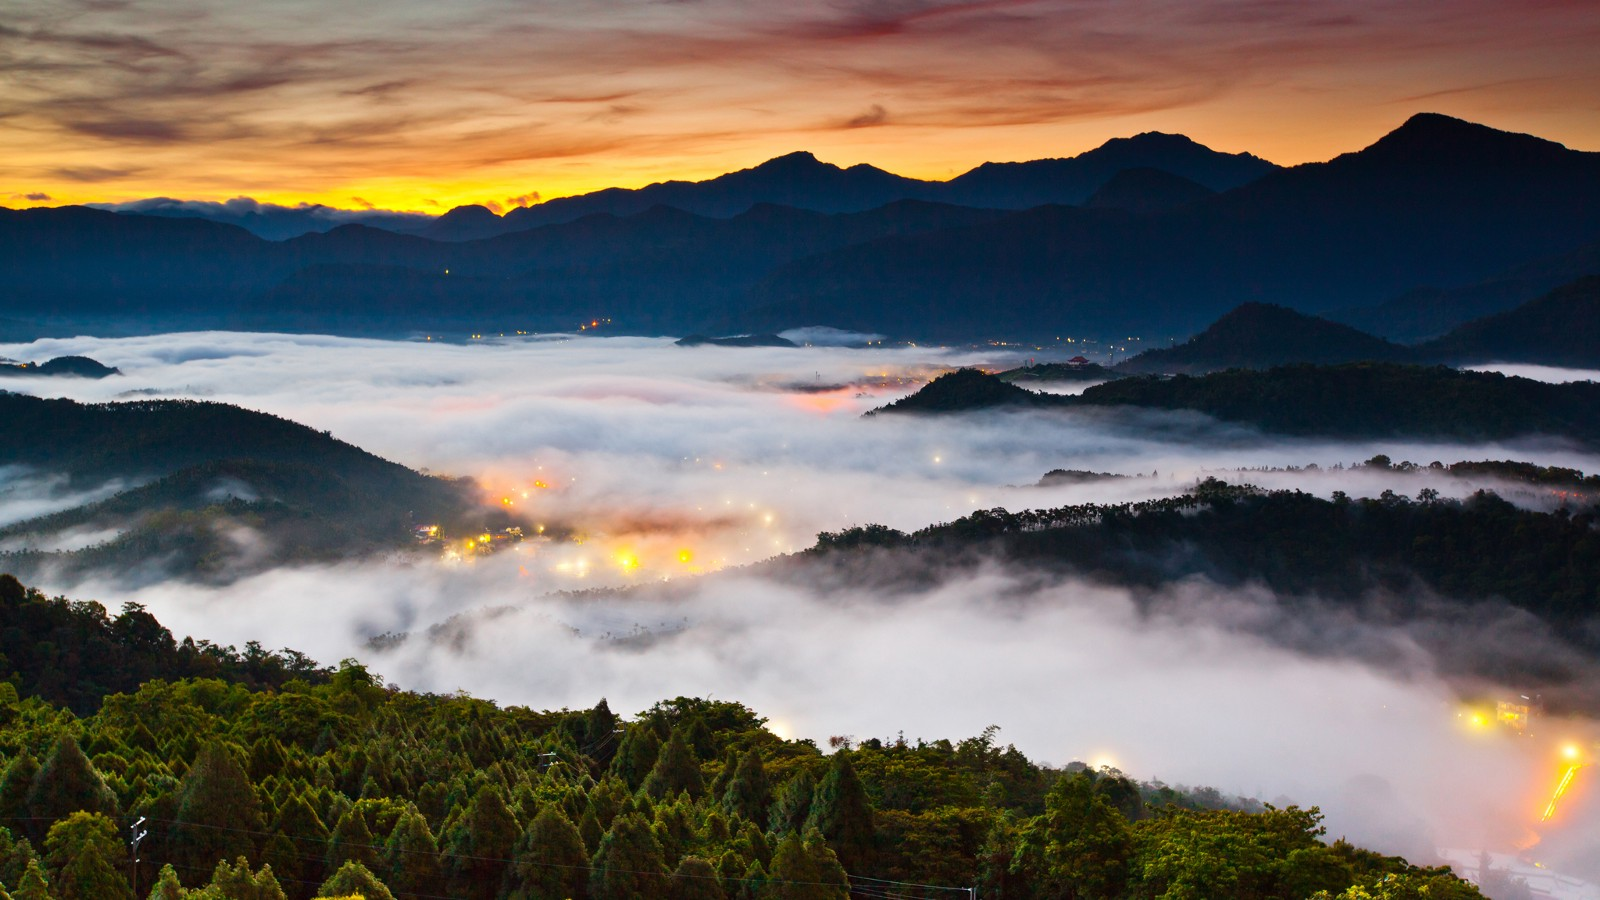 Sunrise over Yuchi Township, Taiwan